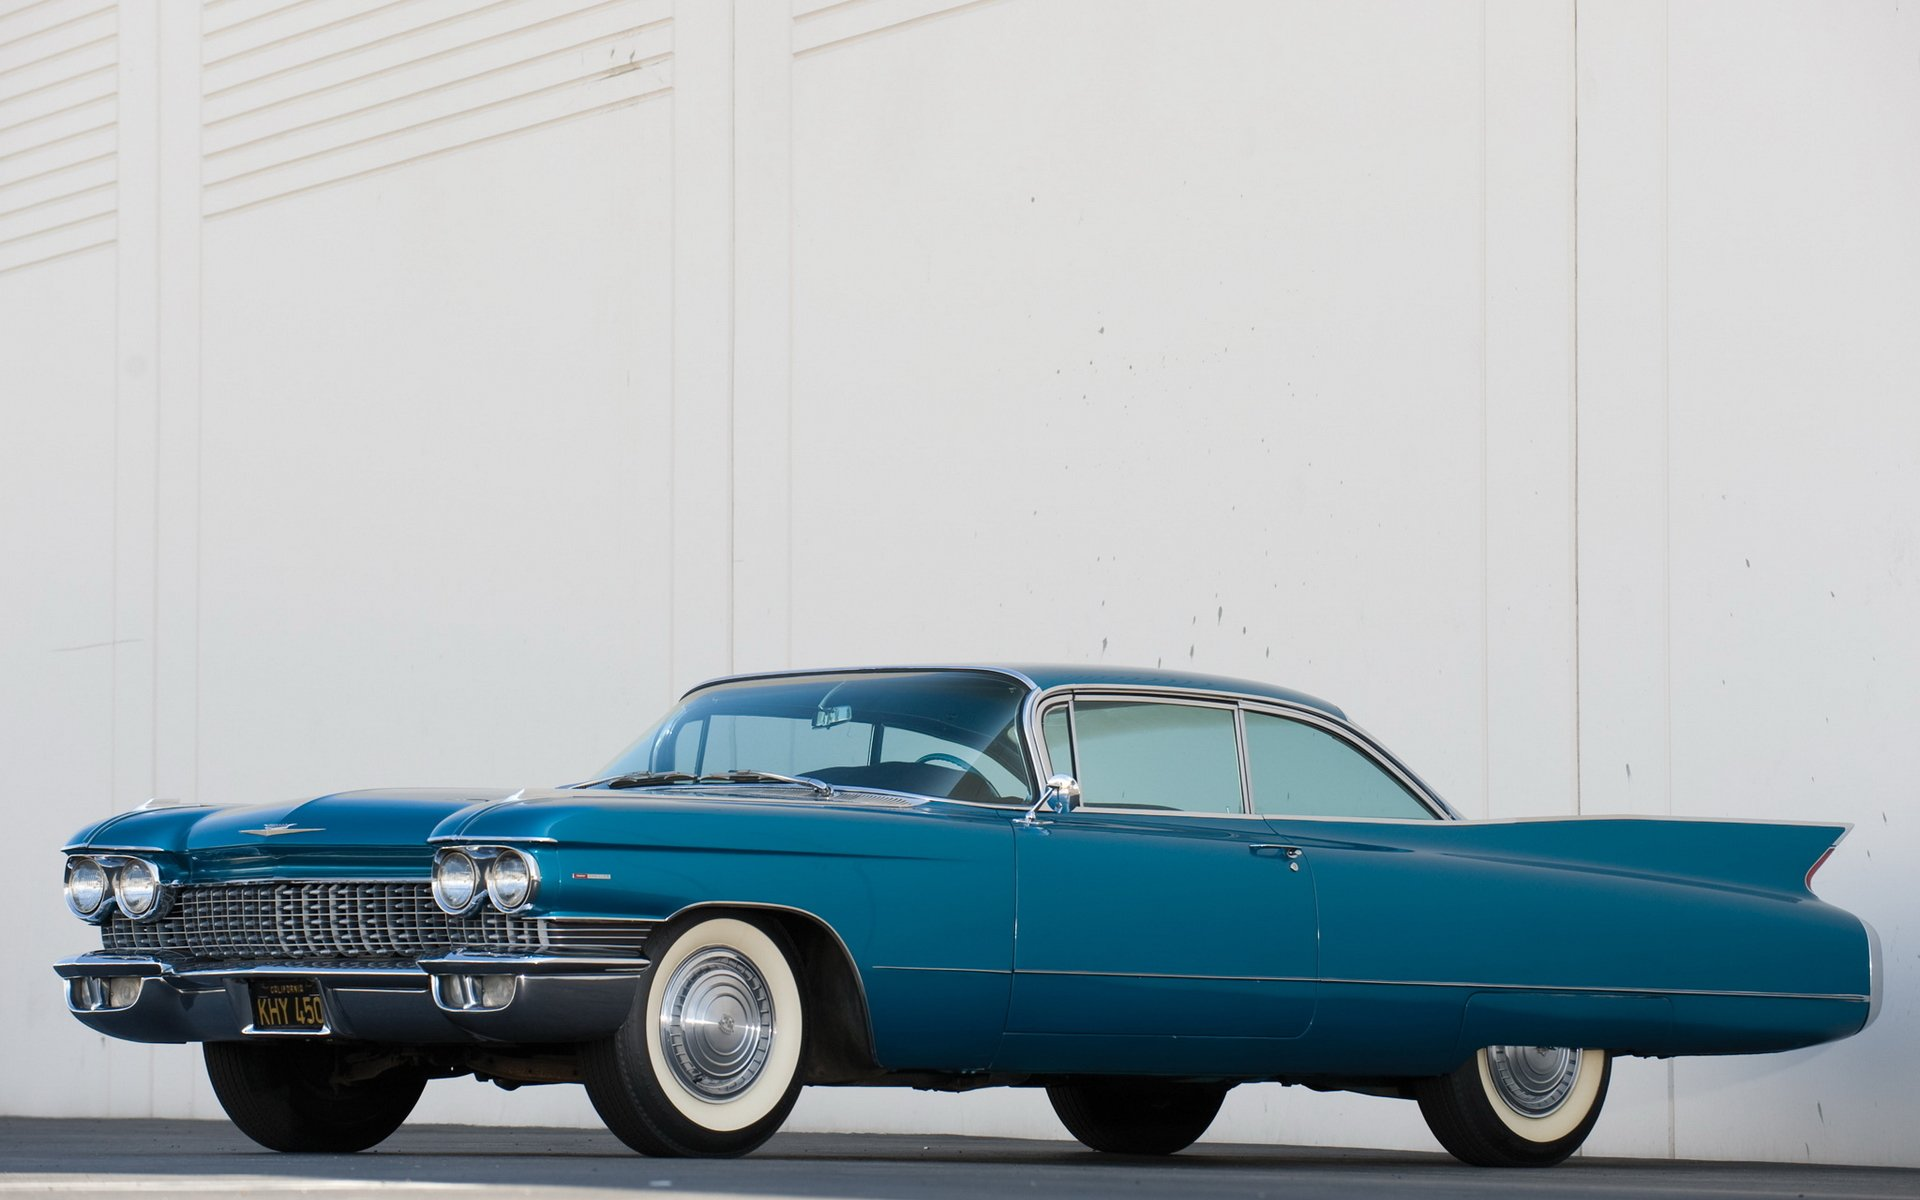 3840x1080 Wallpaper Classic Car 1960 Cadillac Sixty Two Coupe Hd Wallpaper Background